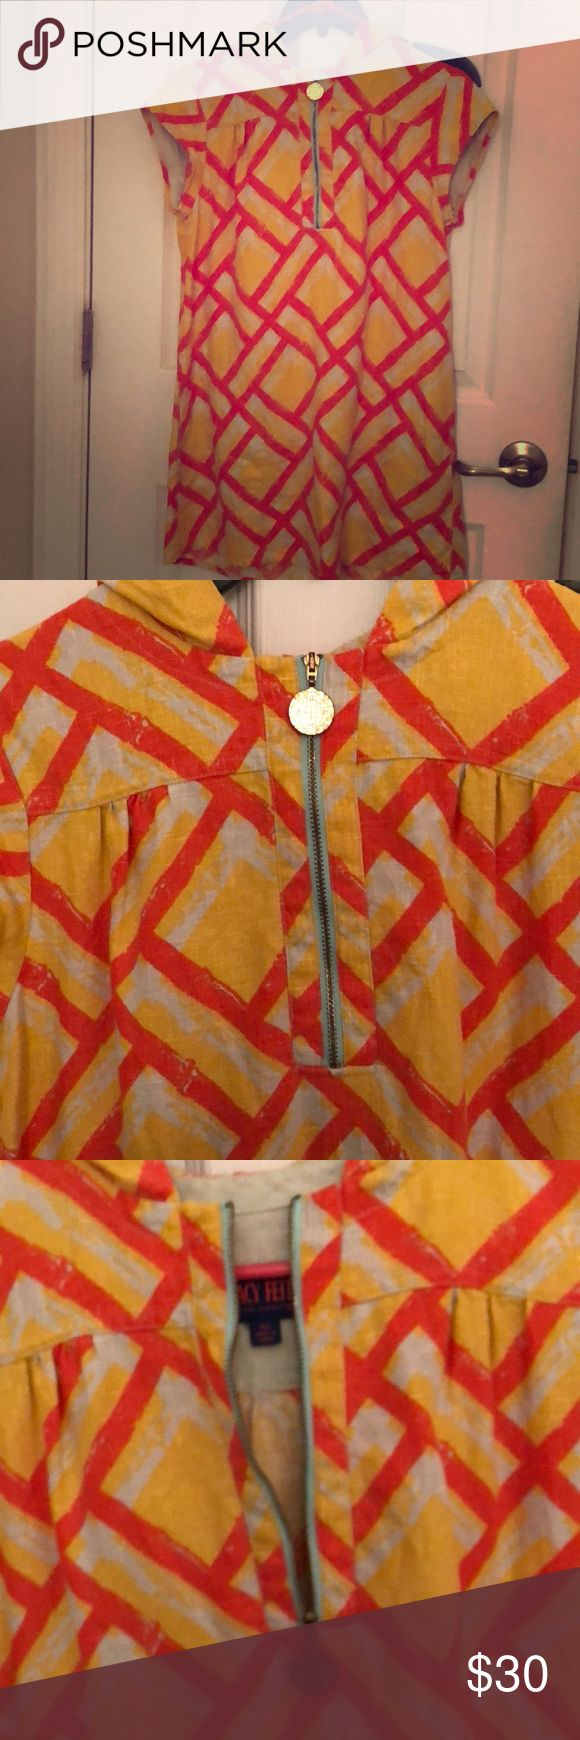 Vintage inspired sack dress Great summer dress!!! Vintage look with functional hood and functional zipper with capped sleeves! Light weight material! No stains or tears! Excellent condition only worn 2x from target tracey feith Dresses